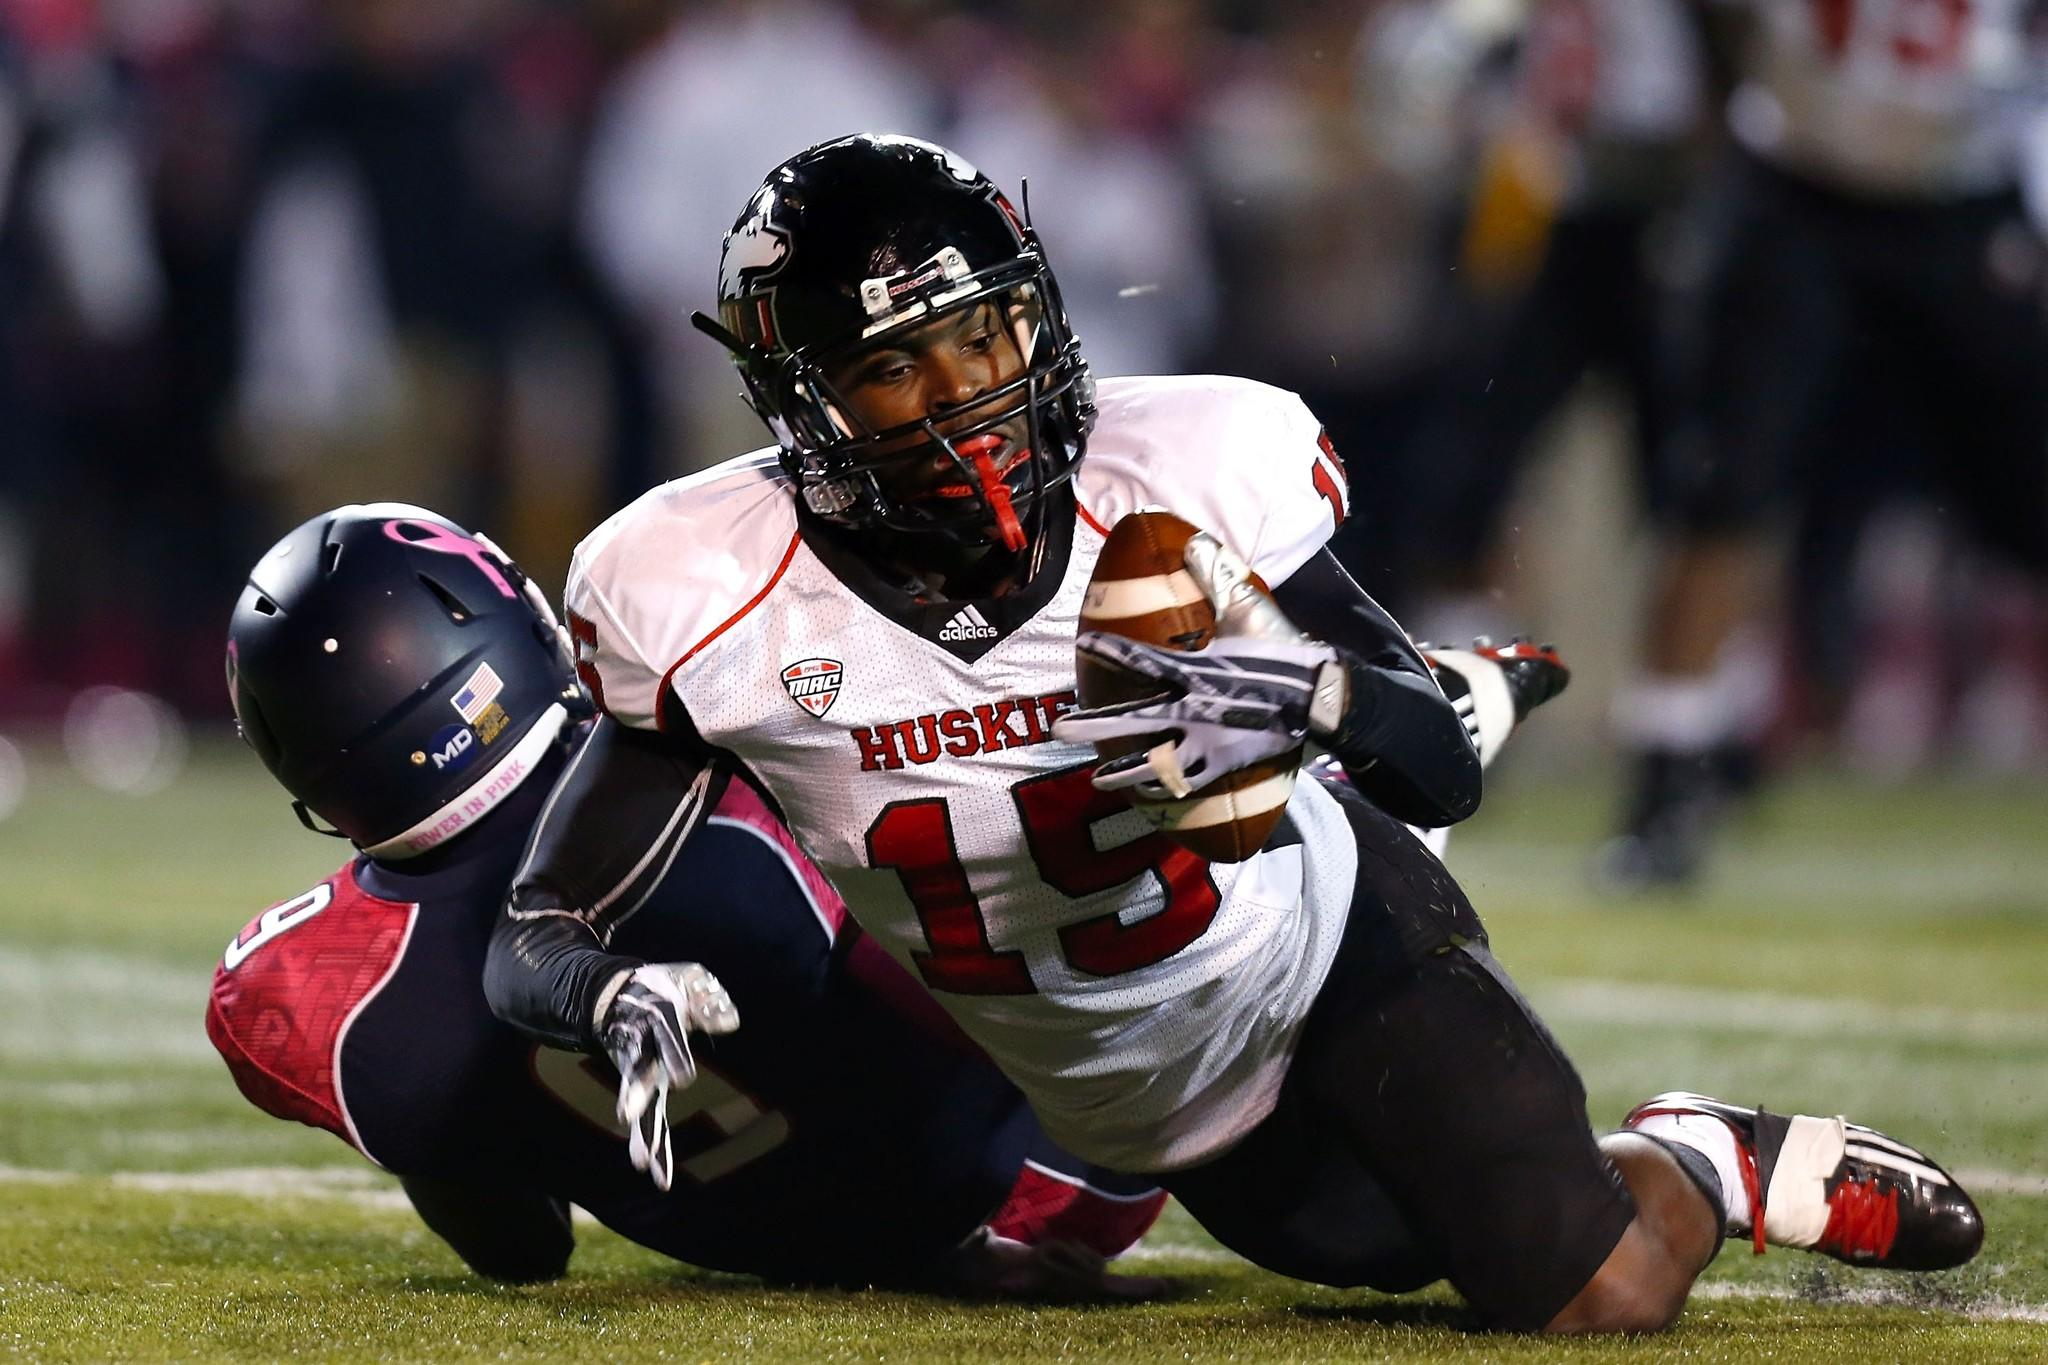 Jimmie Ward (15) of the Northern Illinois Huskies intercepts a pass intended for Alonzo Russell (9) of the Toledo Rockets during the first quarter on November 20, 2013 at the Glass Bowl in Toledo, Ohio.